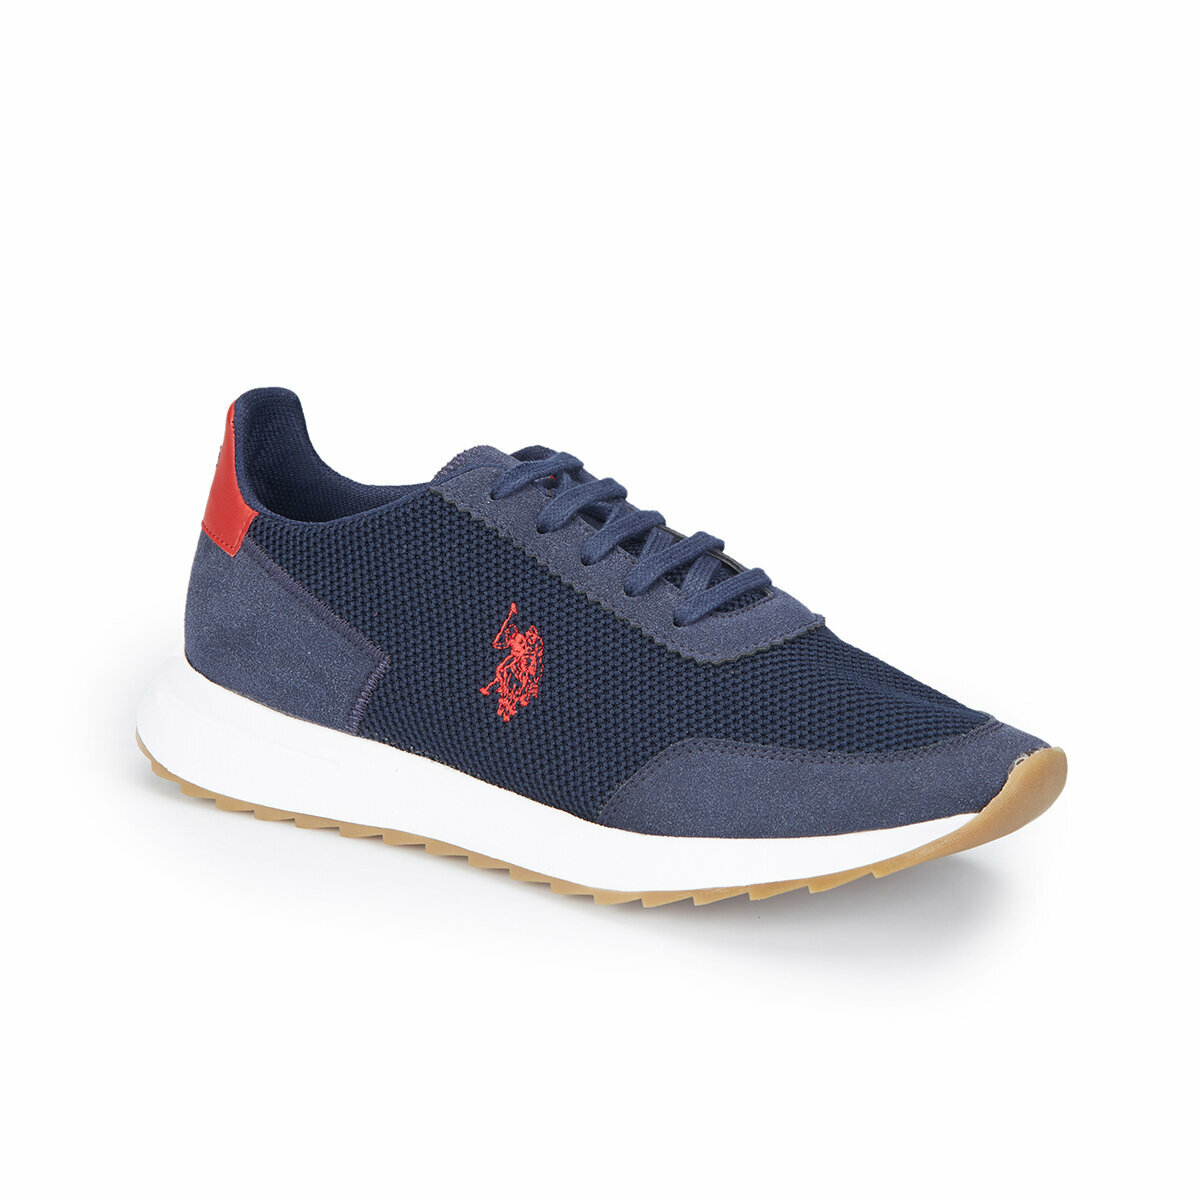 FLO MUNICH Navy Blue Men 'S Sneaker Shoes U.S. POLO ASSN.